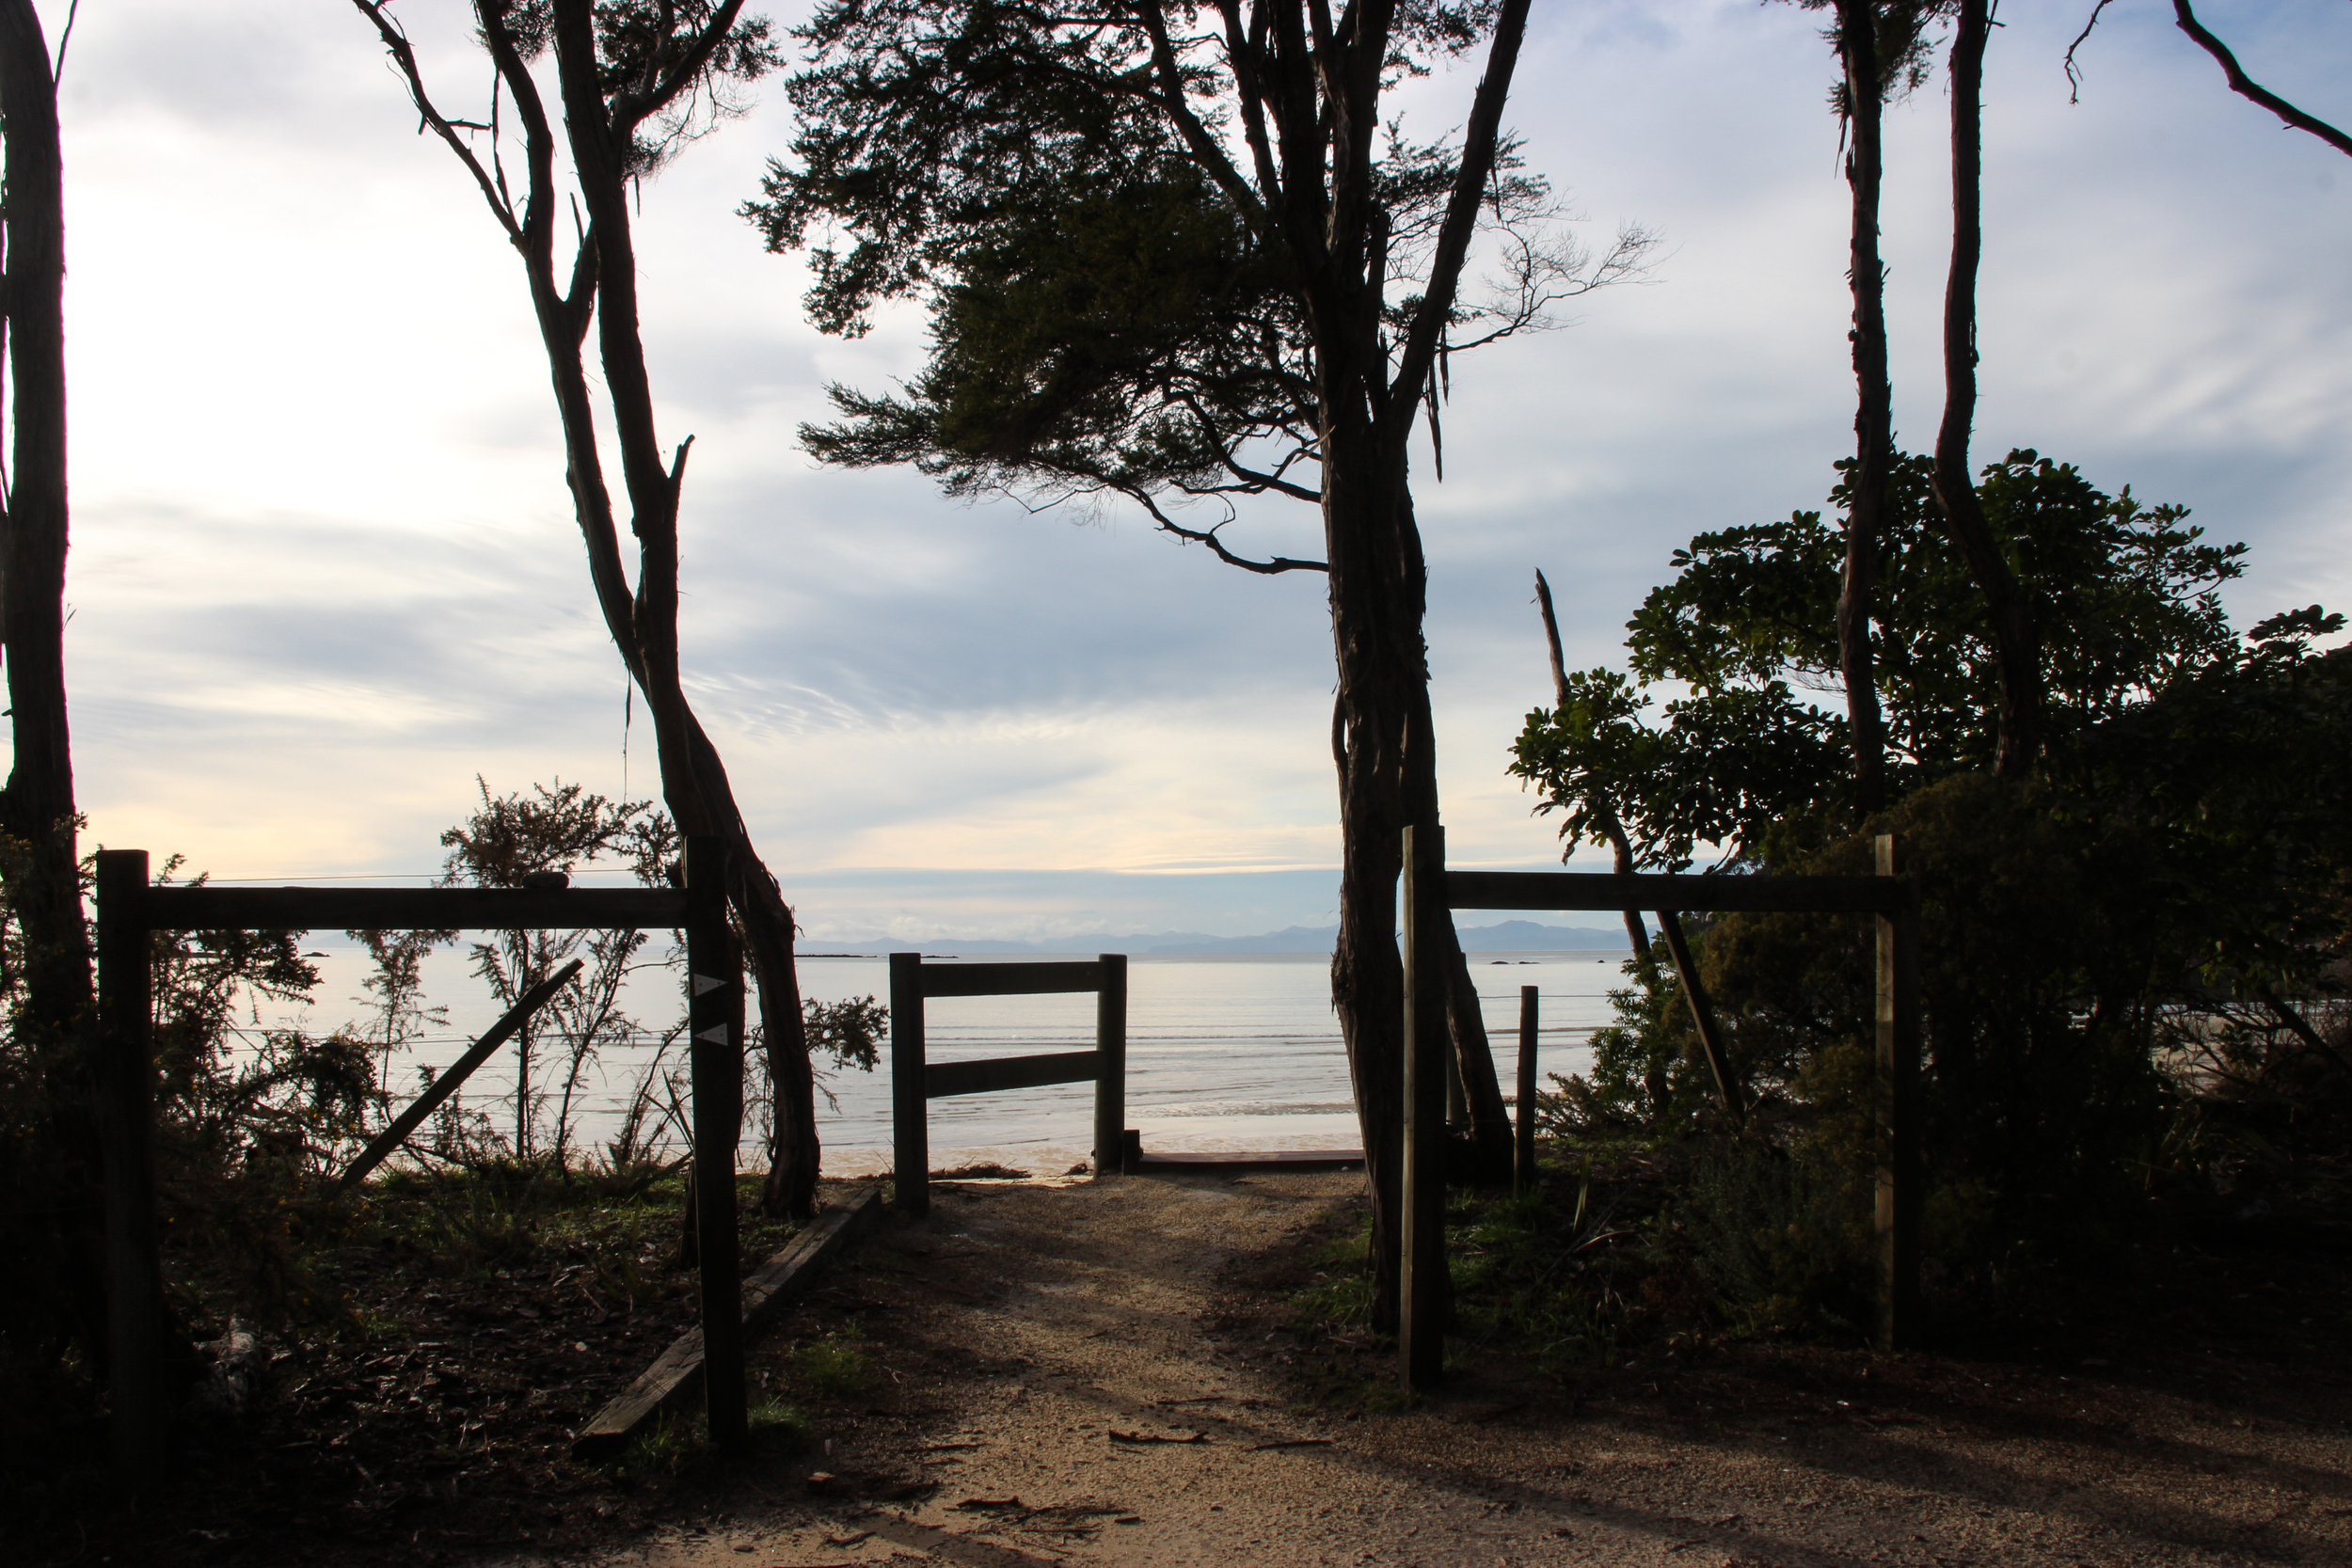 The view from Bark Bay Hut, which sits in a clearing by a small estuary.